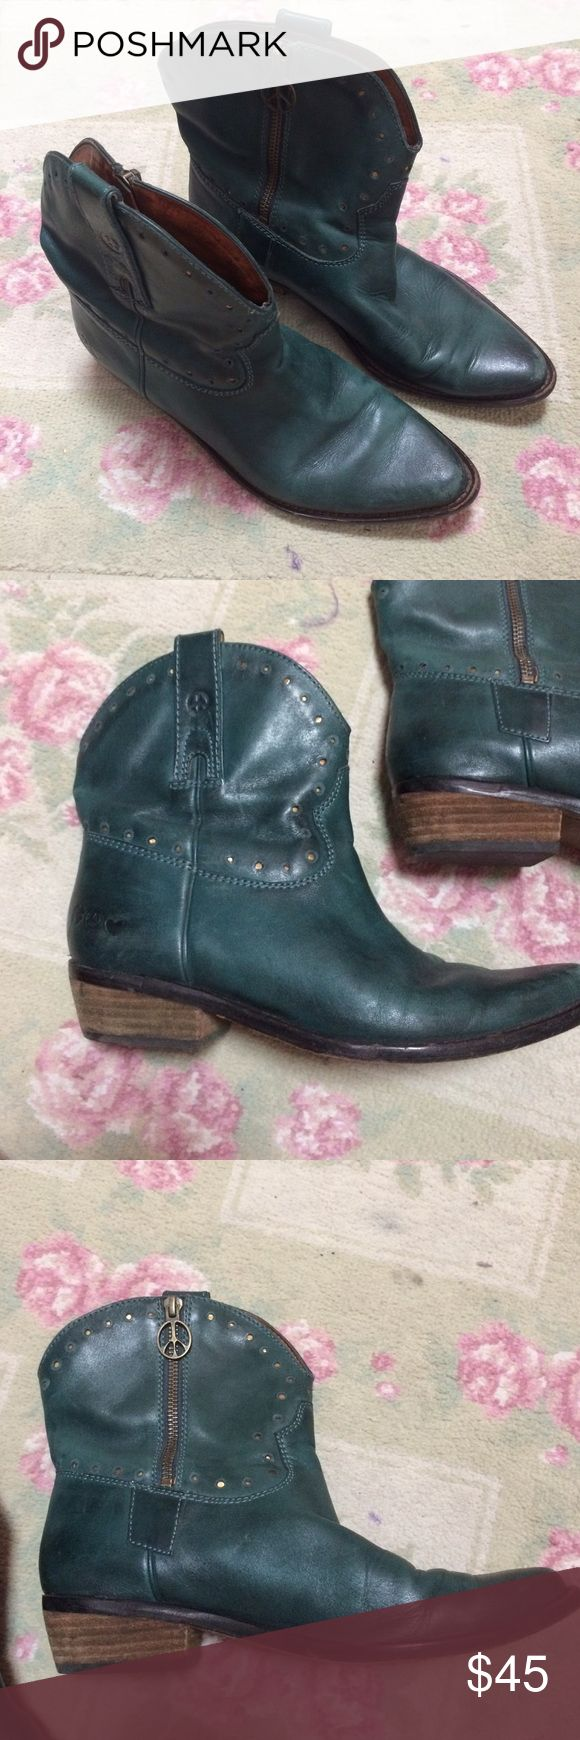 """Luck Brand Ankle Cowboy Boots These are a dark green color. They are so cute, I just wish I wore them more. They have a zipper and a 1"""" heel. They have been worn, but are in really great shape. Lucky Brand Shoes Ankle Boots & Booties"""